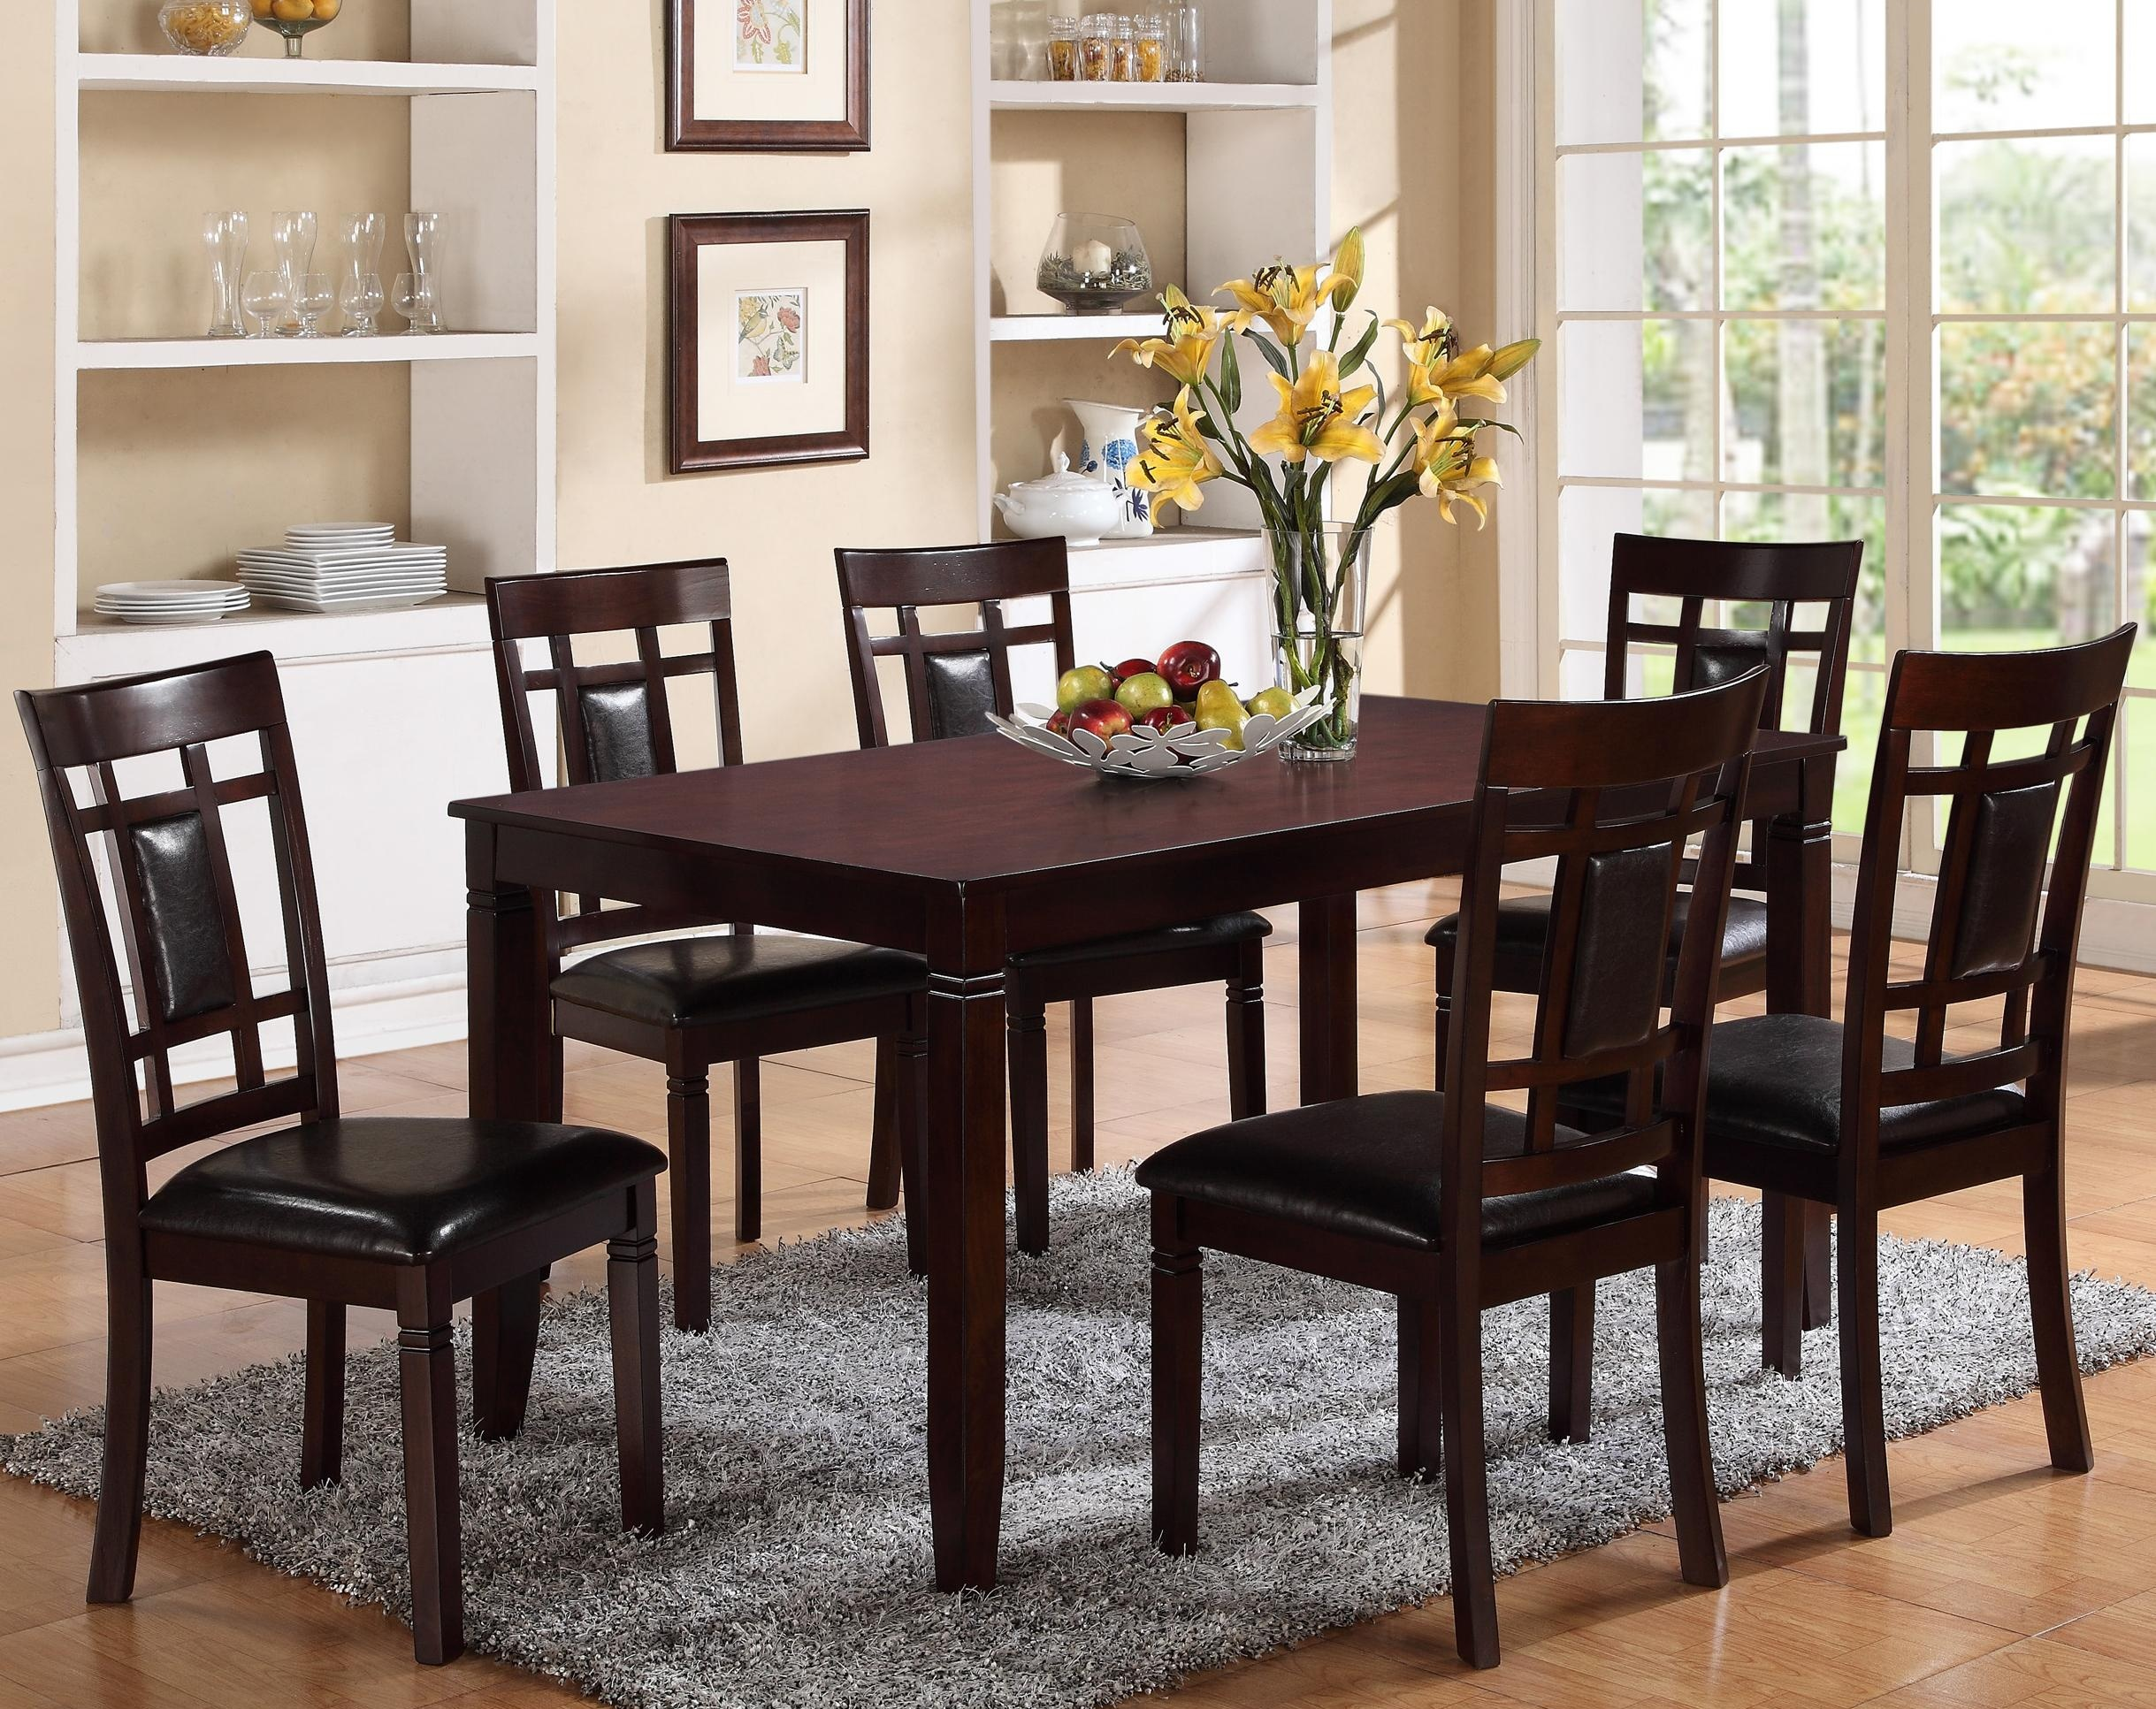 Furniture Clearance Center Wood Dinettes And Kitchen Sets